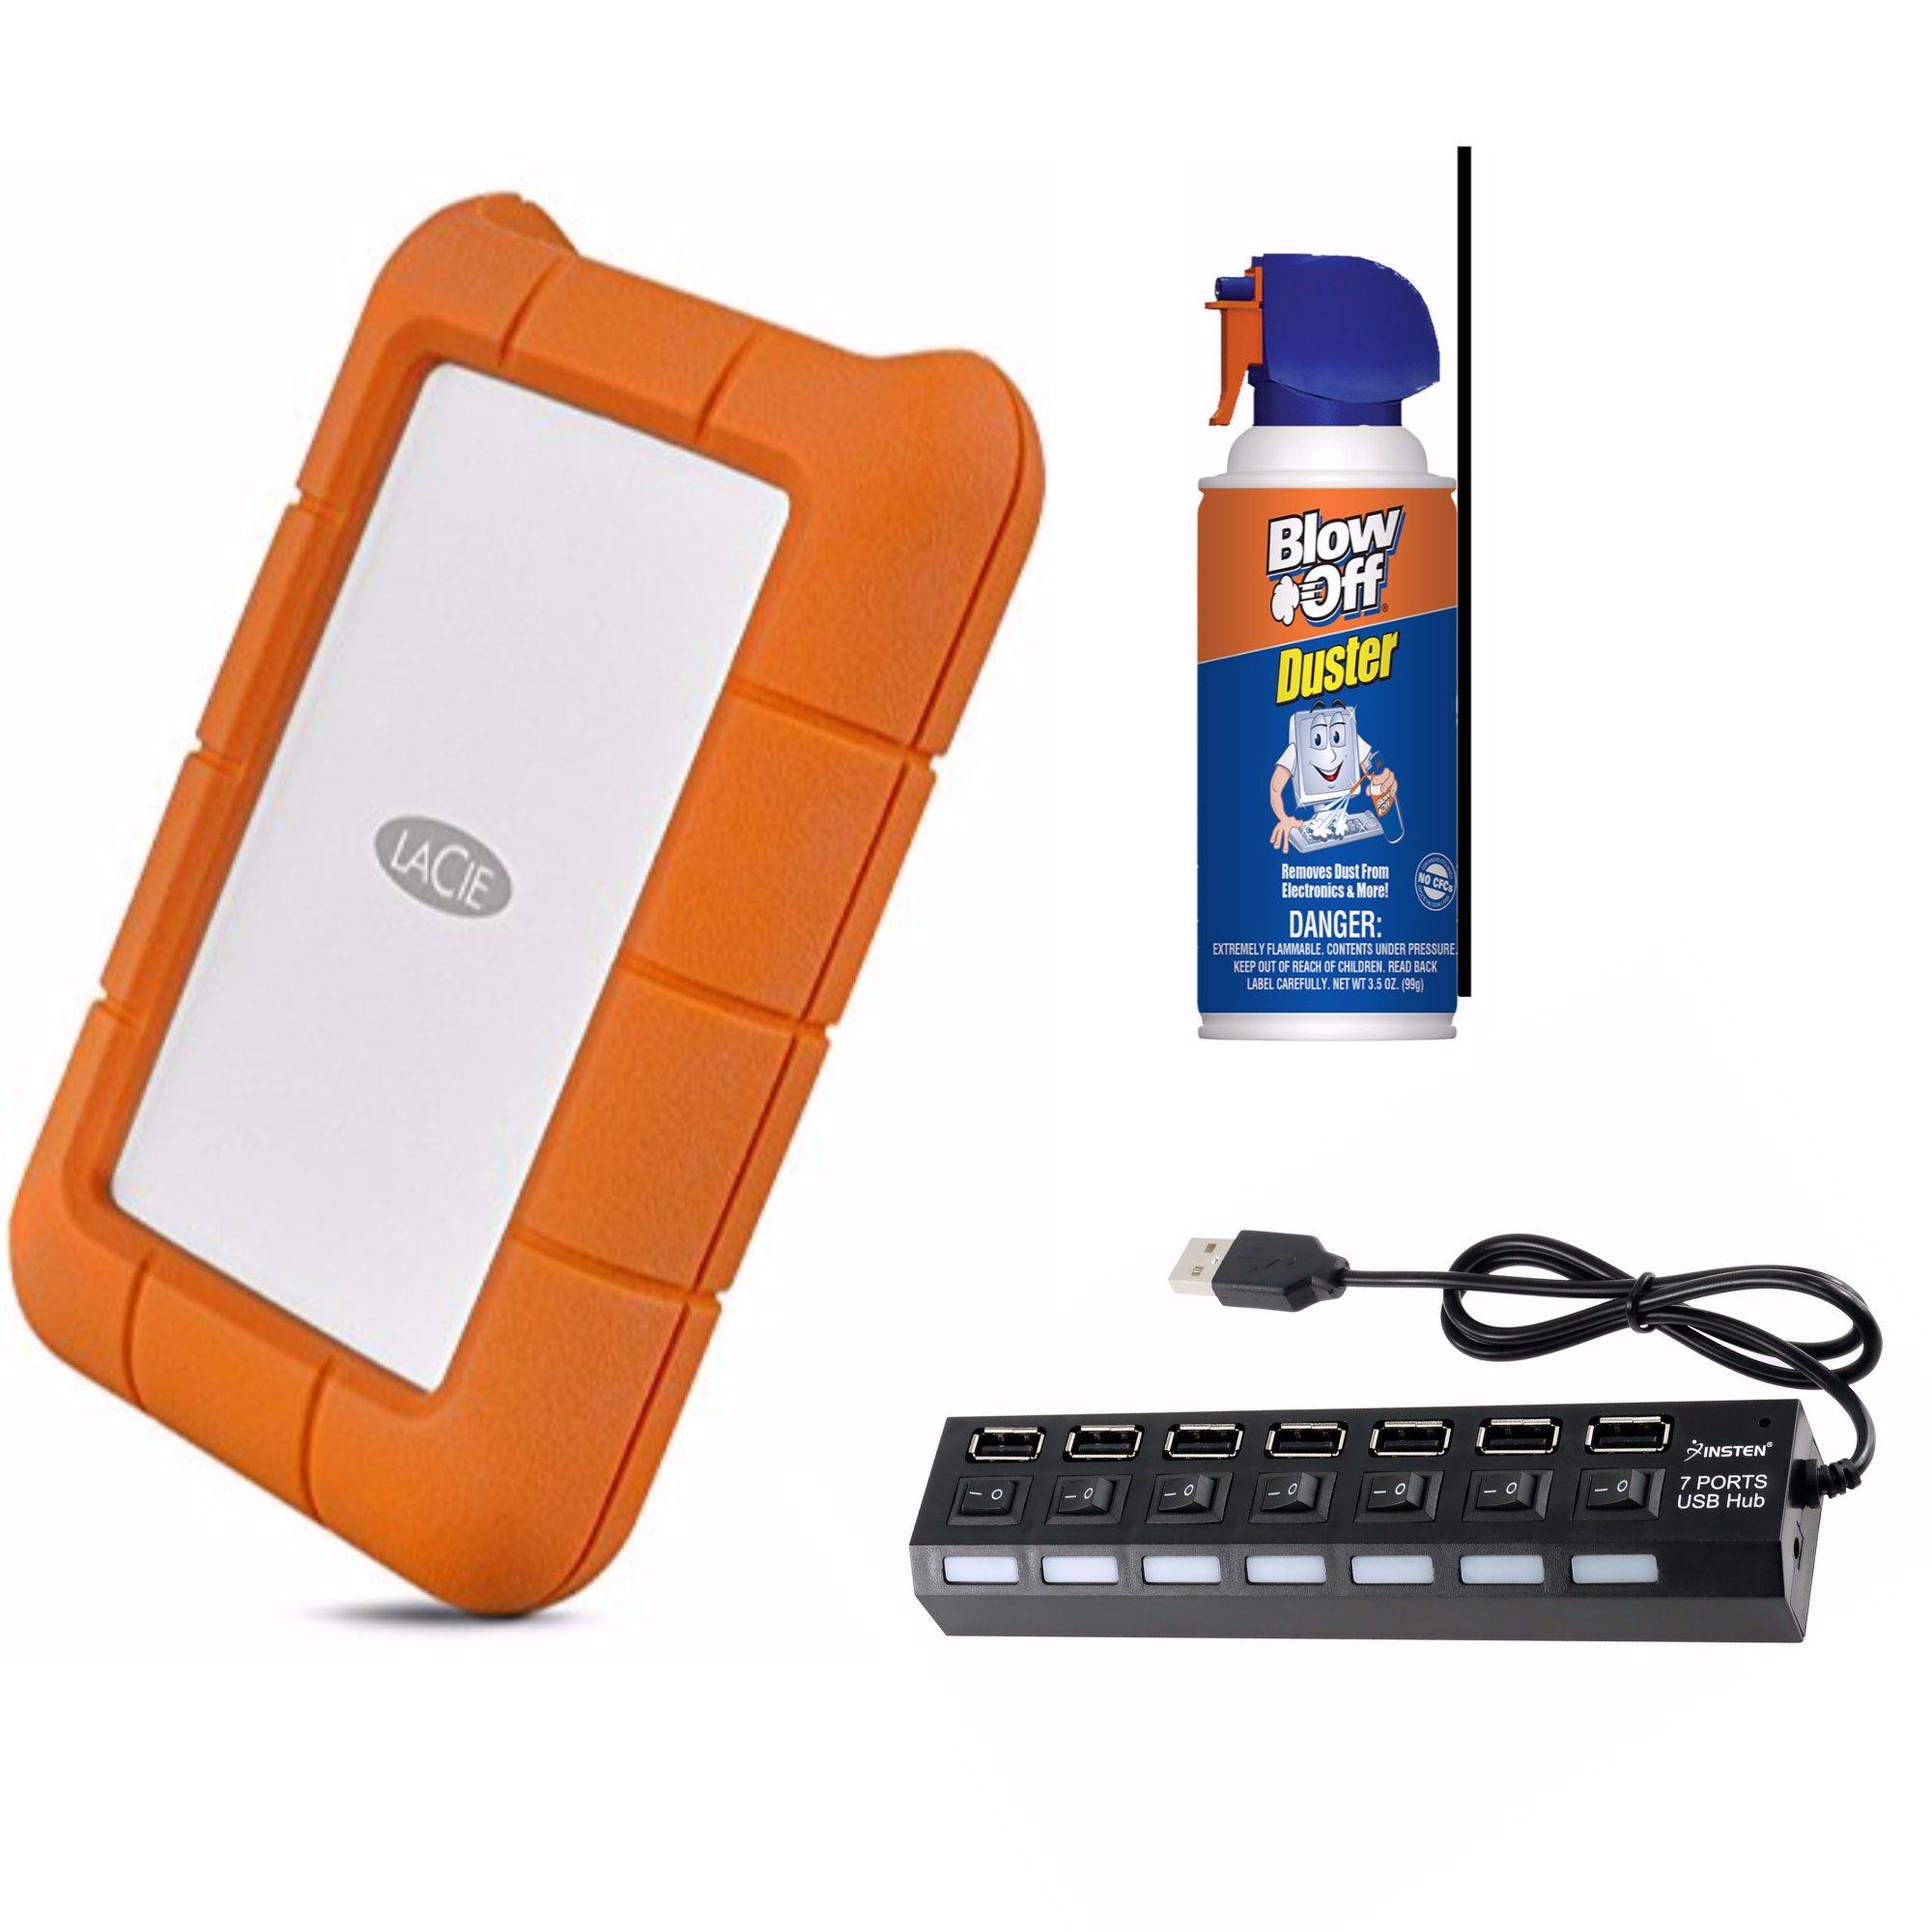 LaCie Rugged STFR4000800 4 TB 2.5'' External Hard Drive bundle